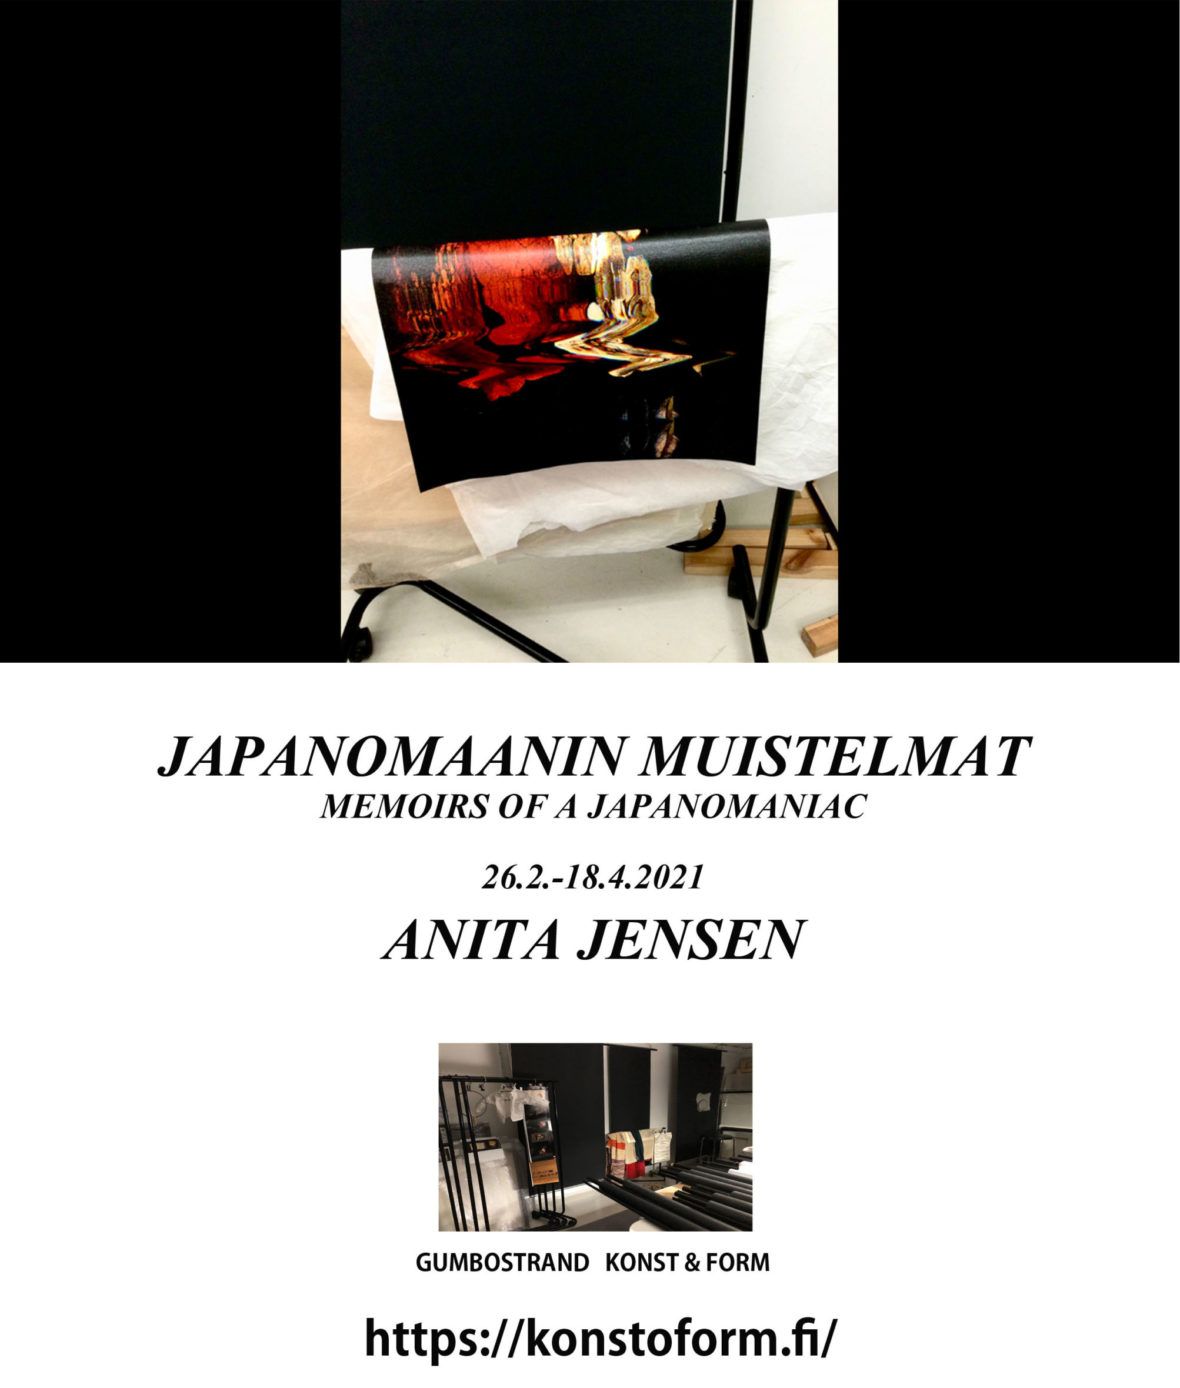 Memoirs of a Japanomaniac; Invitation to the exhibition 2021